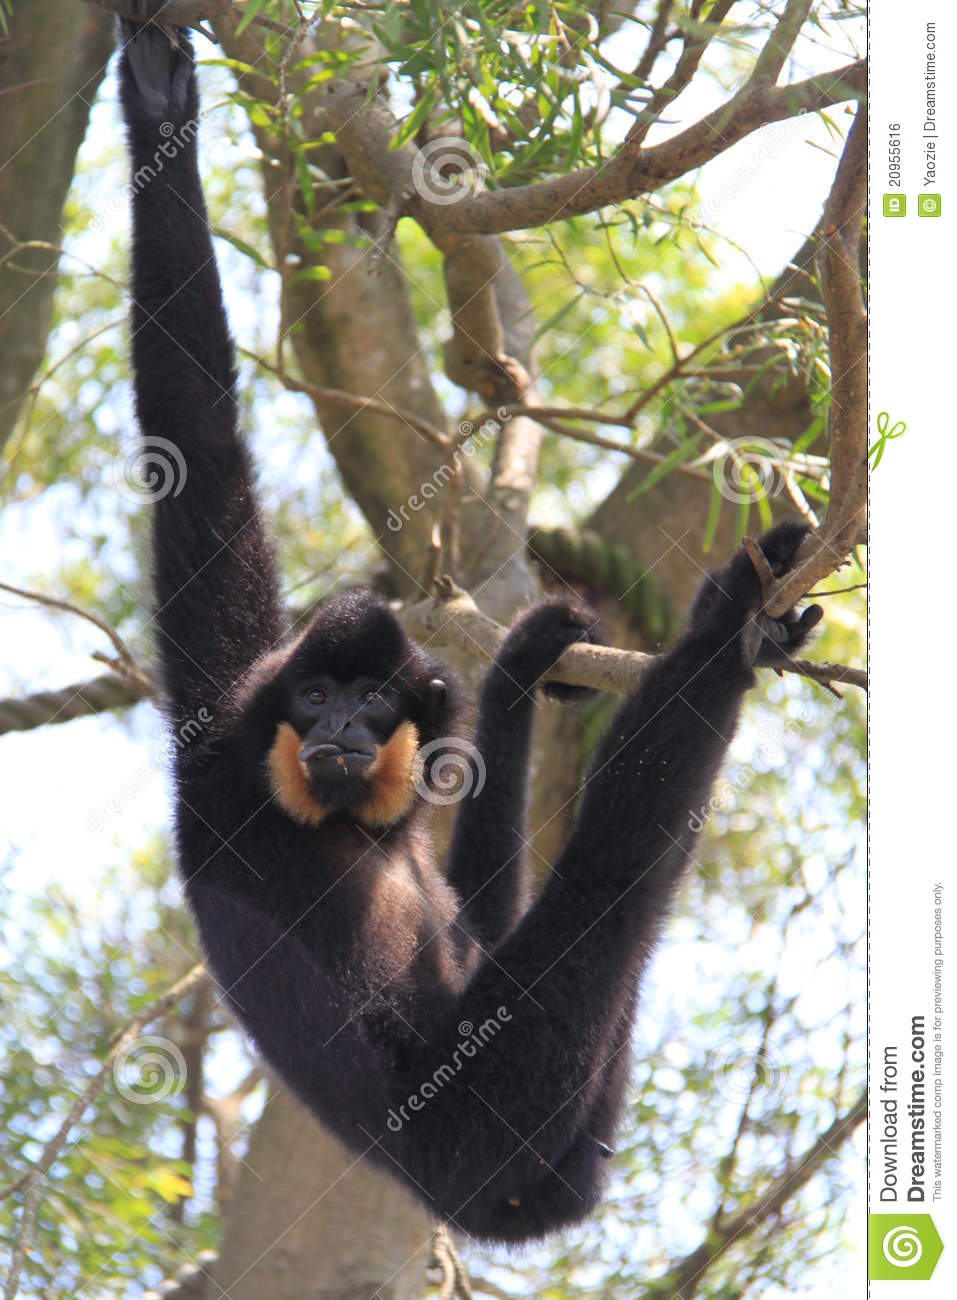 Monkey Hanging On A Tree Royalty Free Stock Image - Image: 20955616Western Desert Clipart